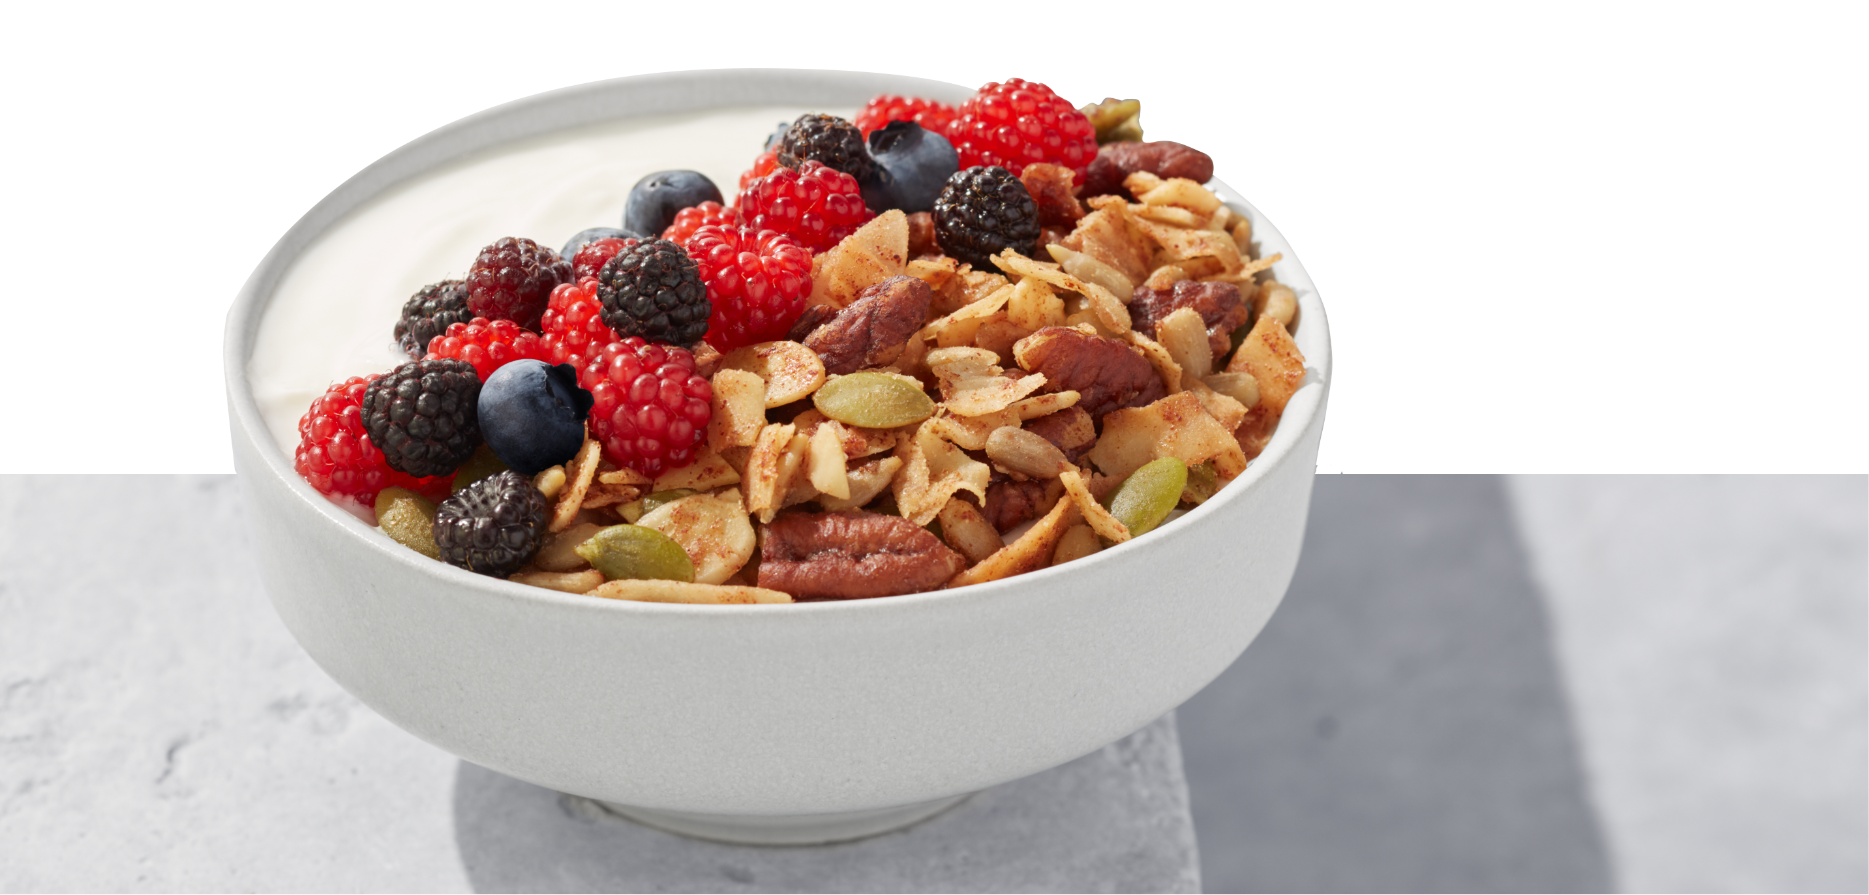 Keto Nut Granola with berries and milk is the ultimate keto breakfast